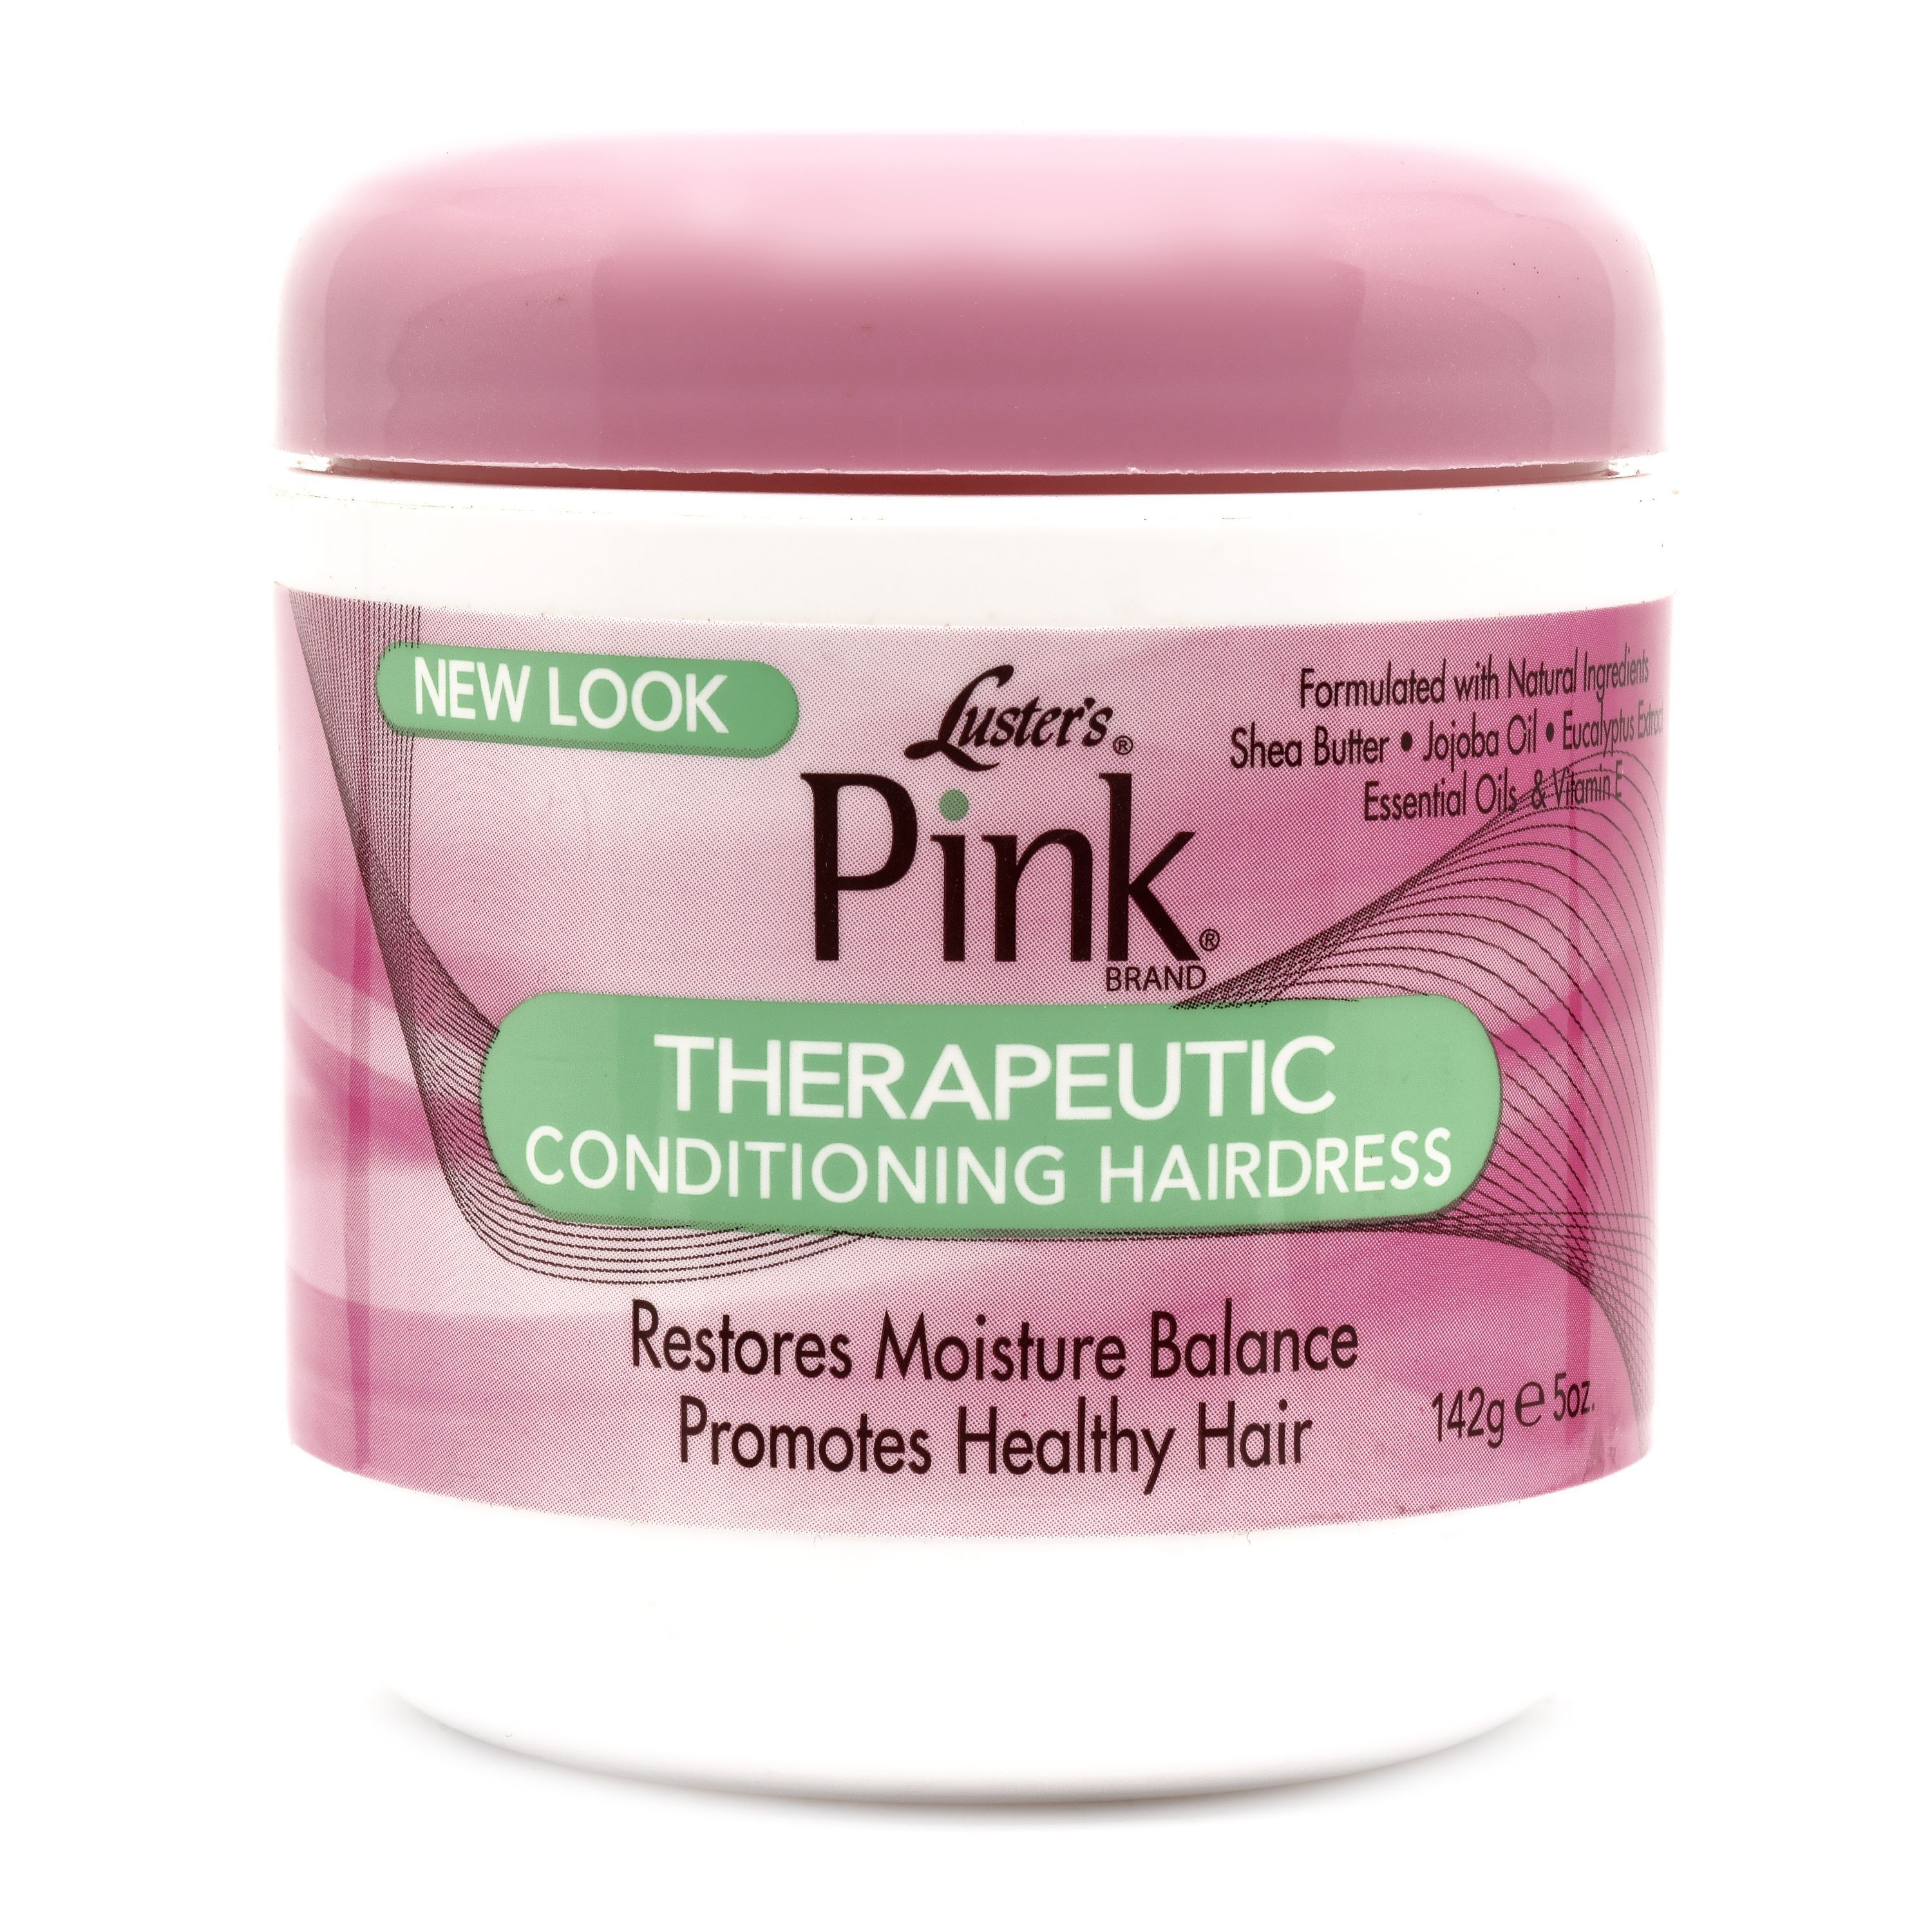 Luster's Pink Therapeutic Conditioning Hairdress - 5oz